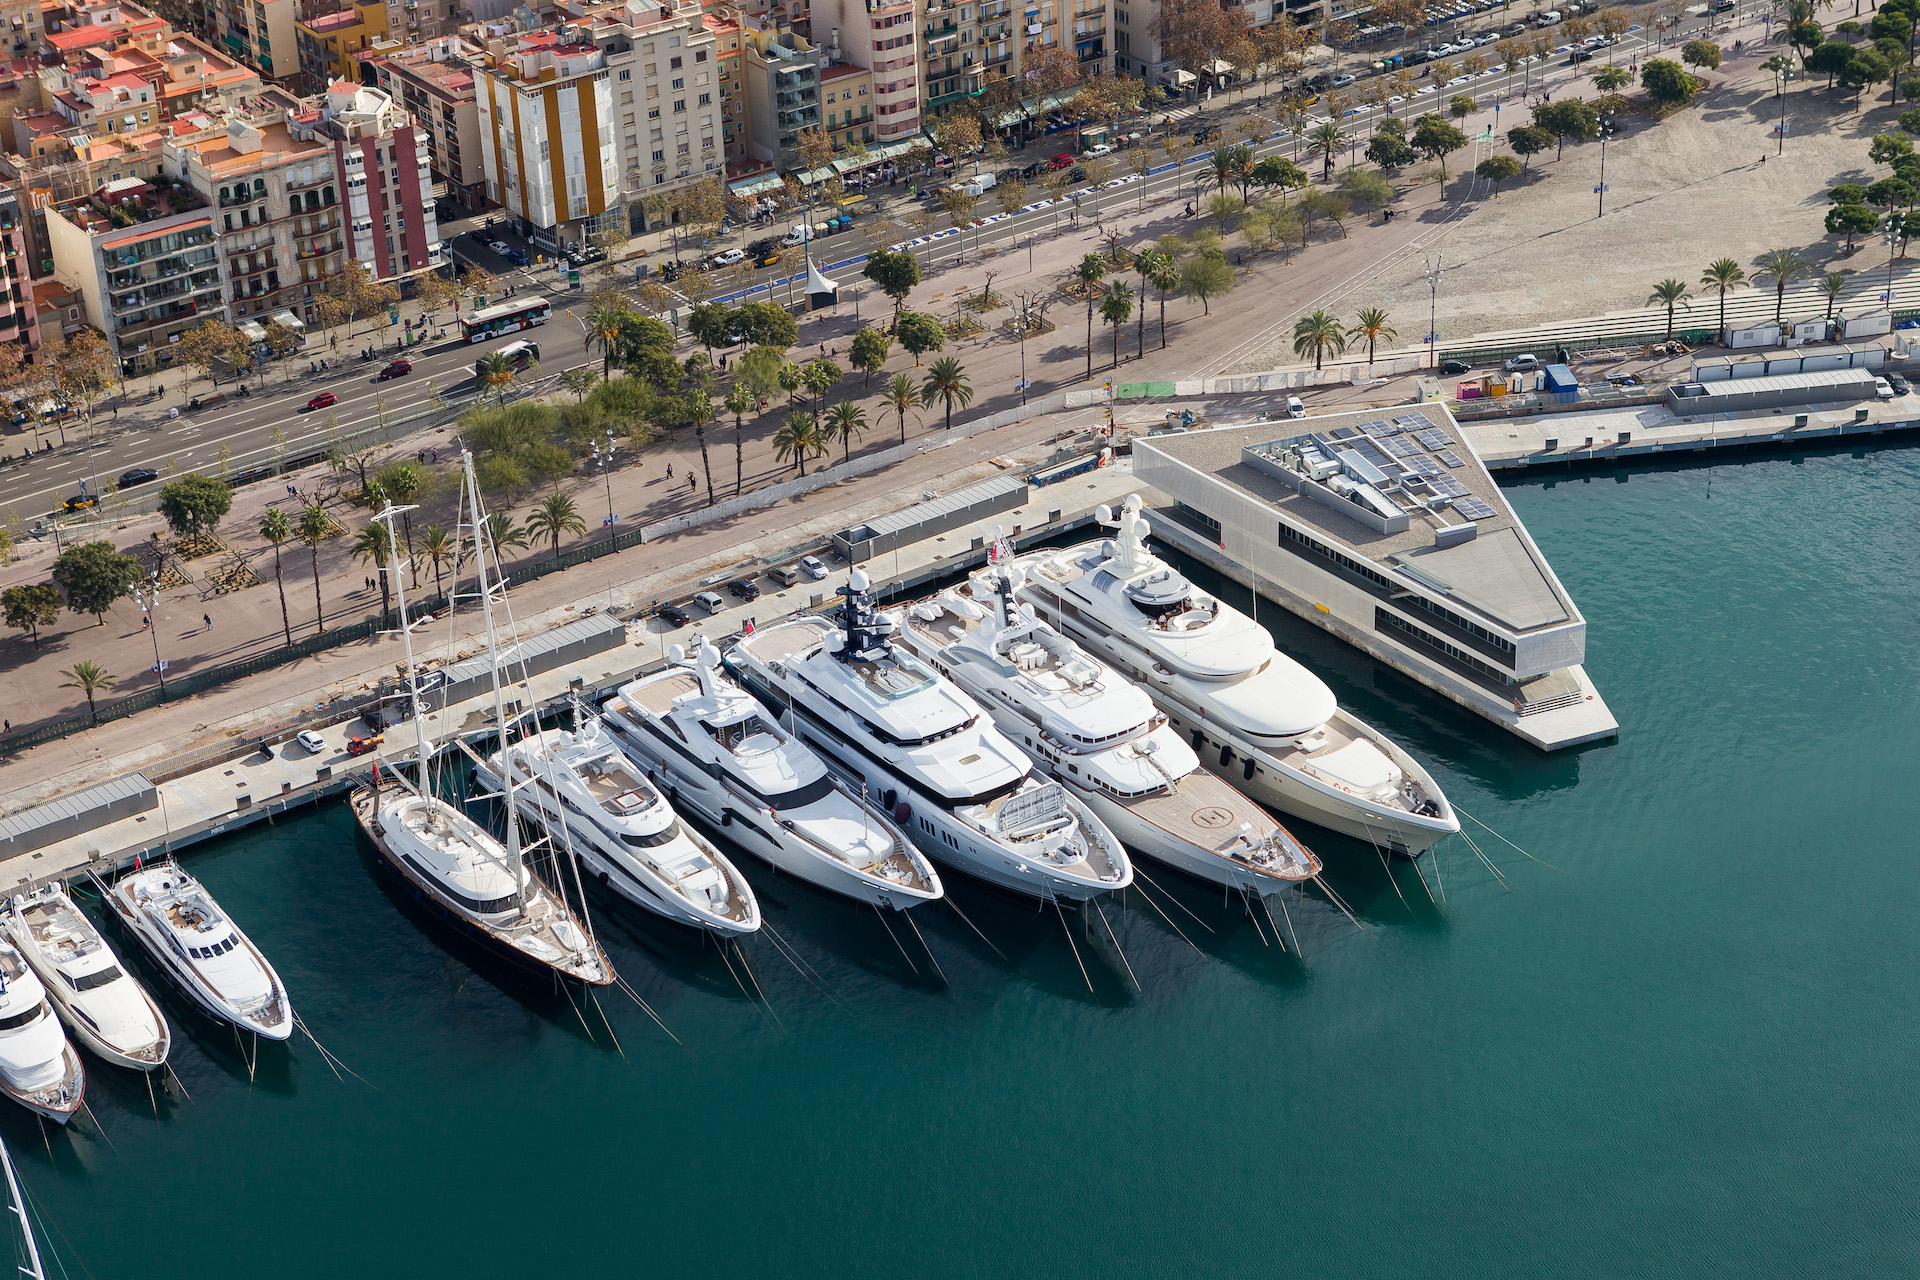 Barcalona is the new hotspot for billionaires and their superyachts